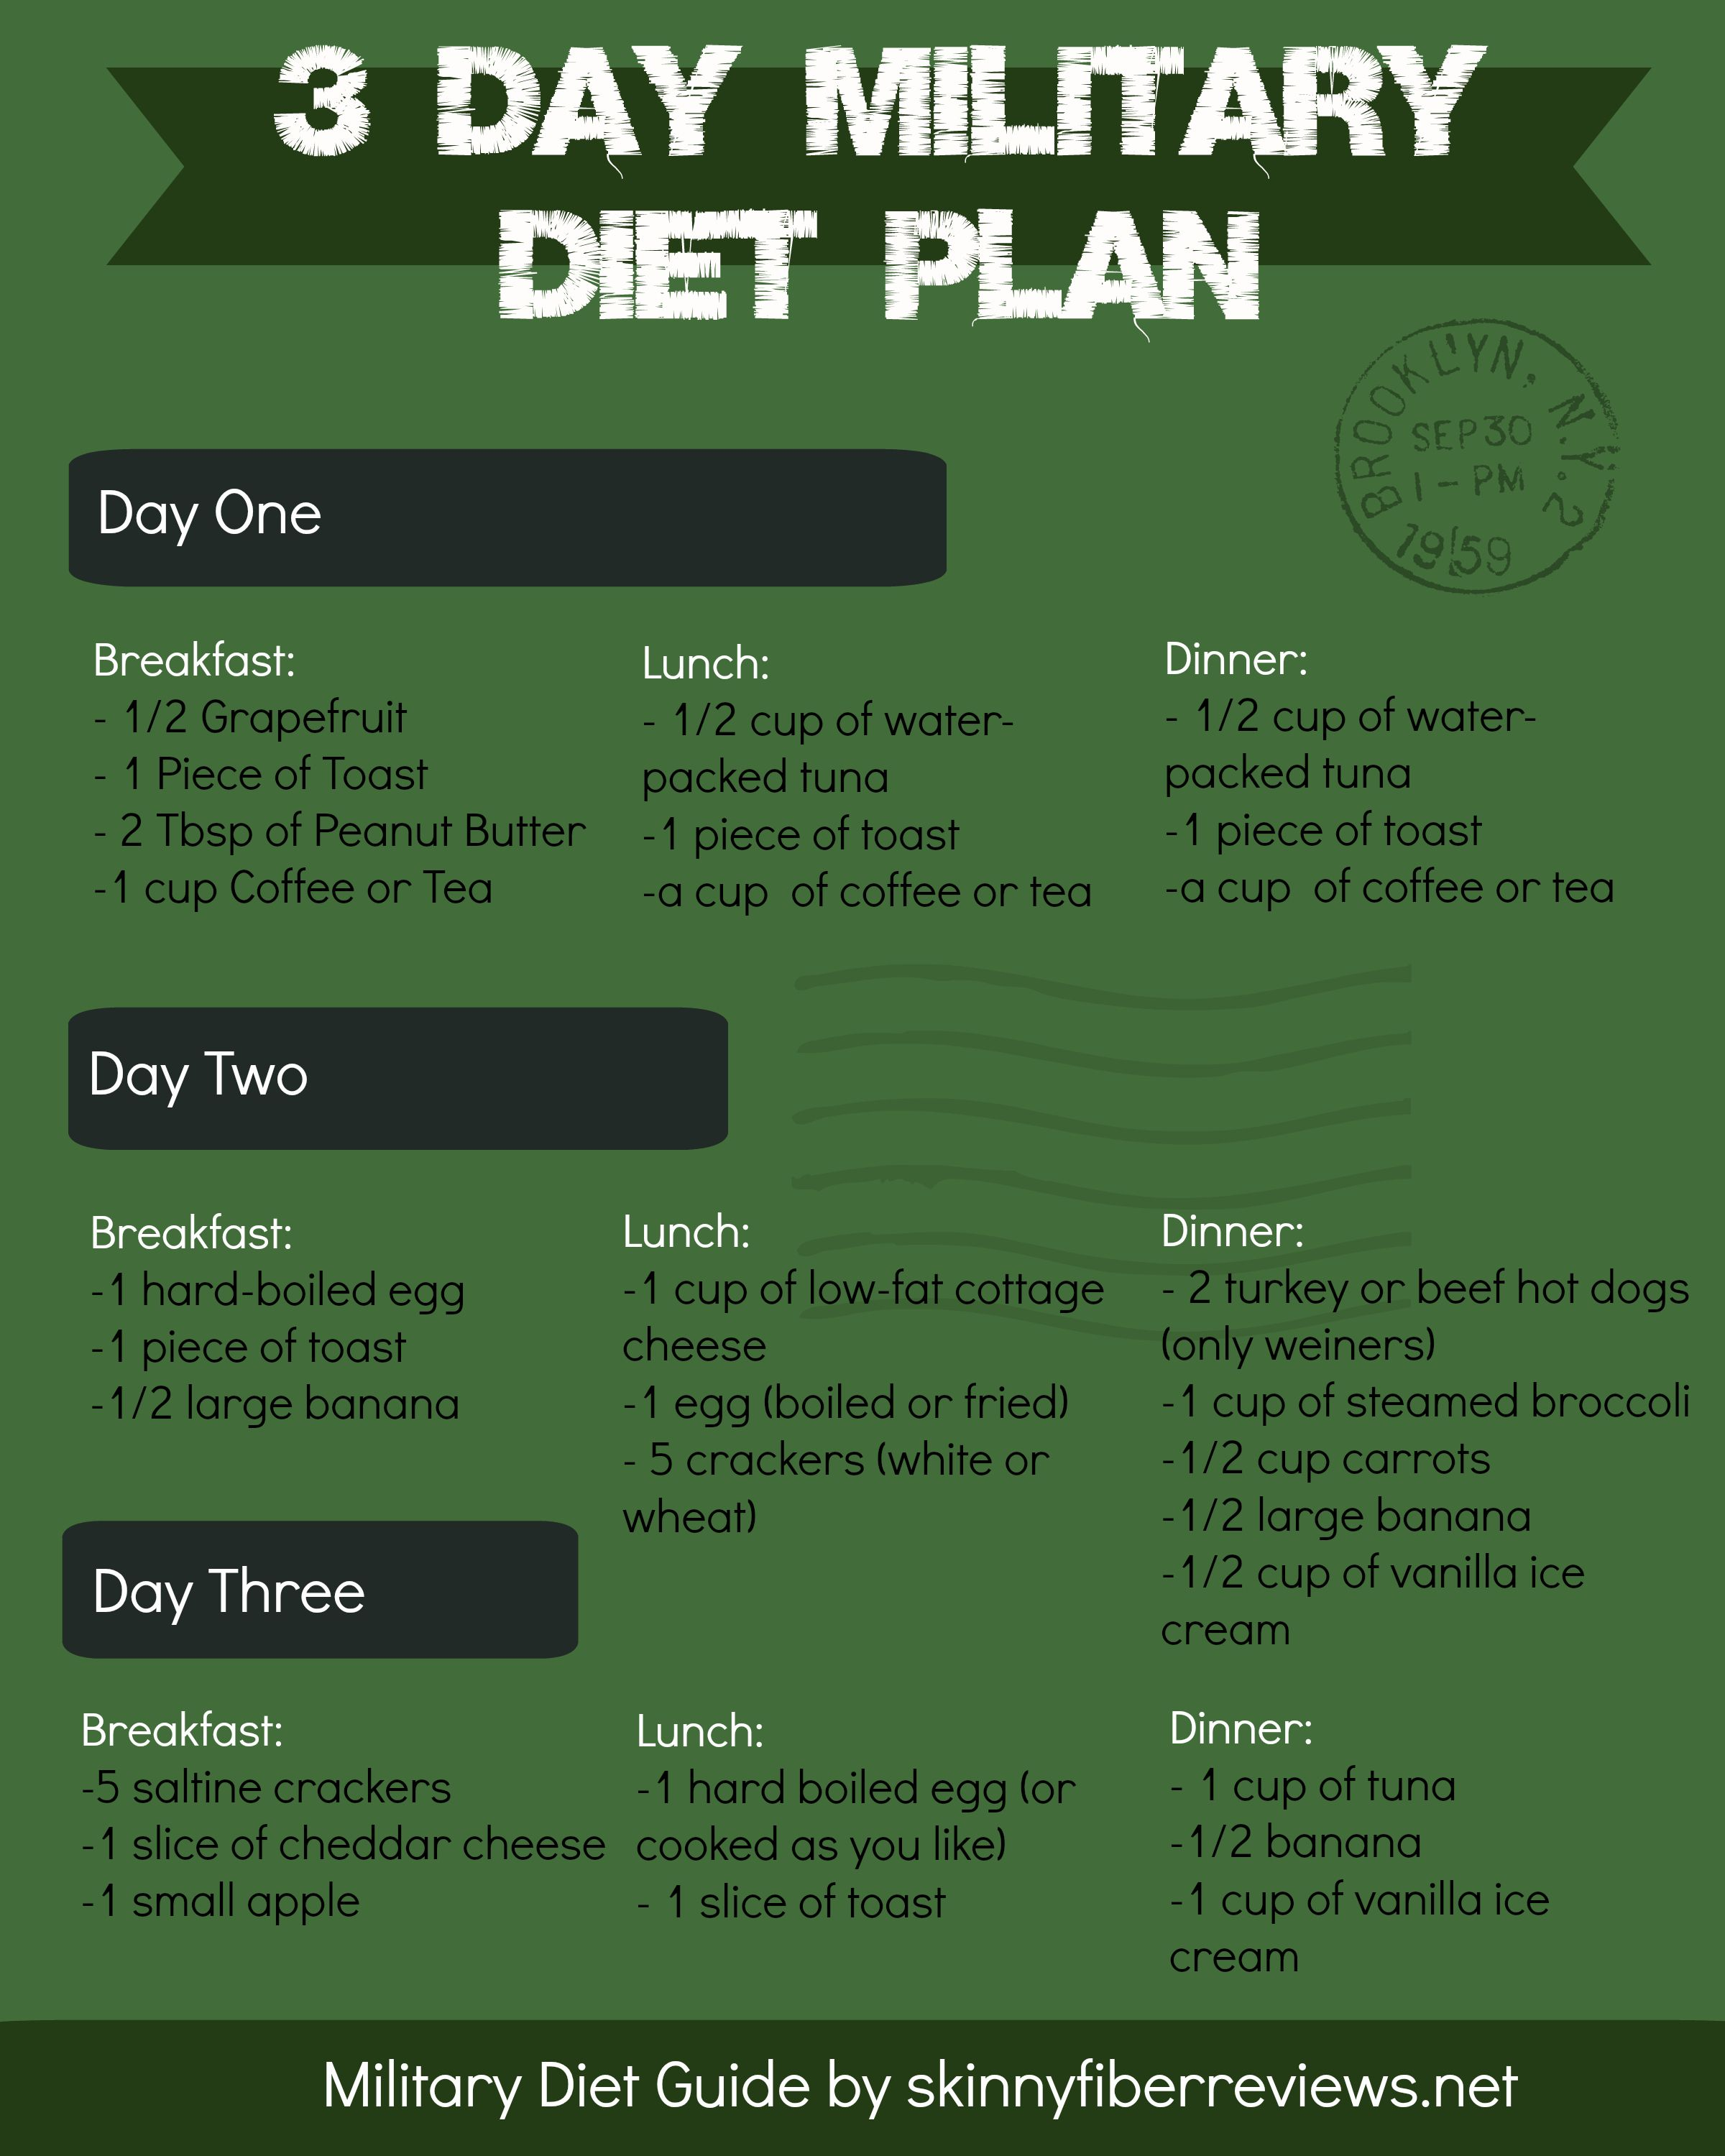 military diet menu - 3 day diet plan this is a great printable to